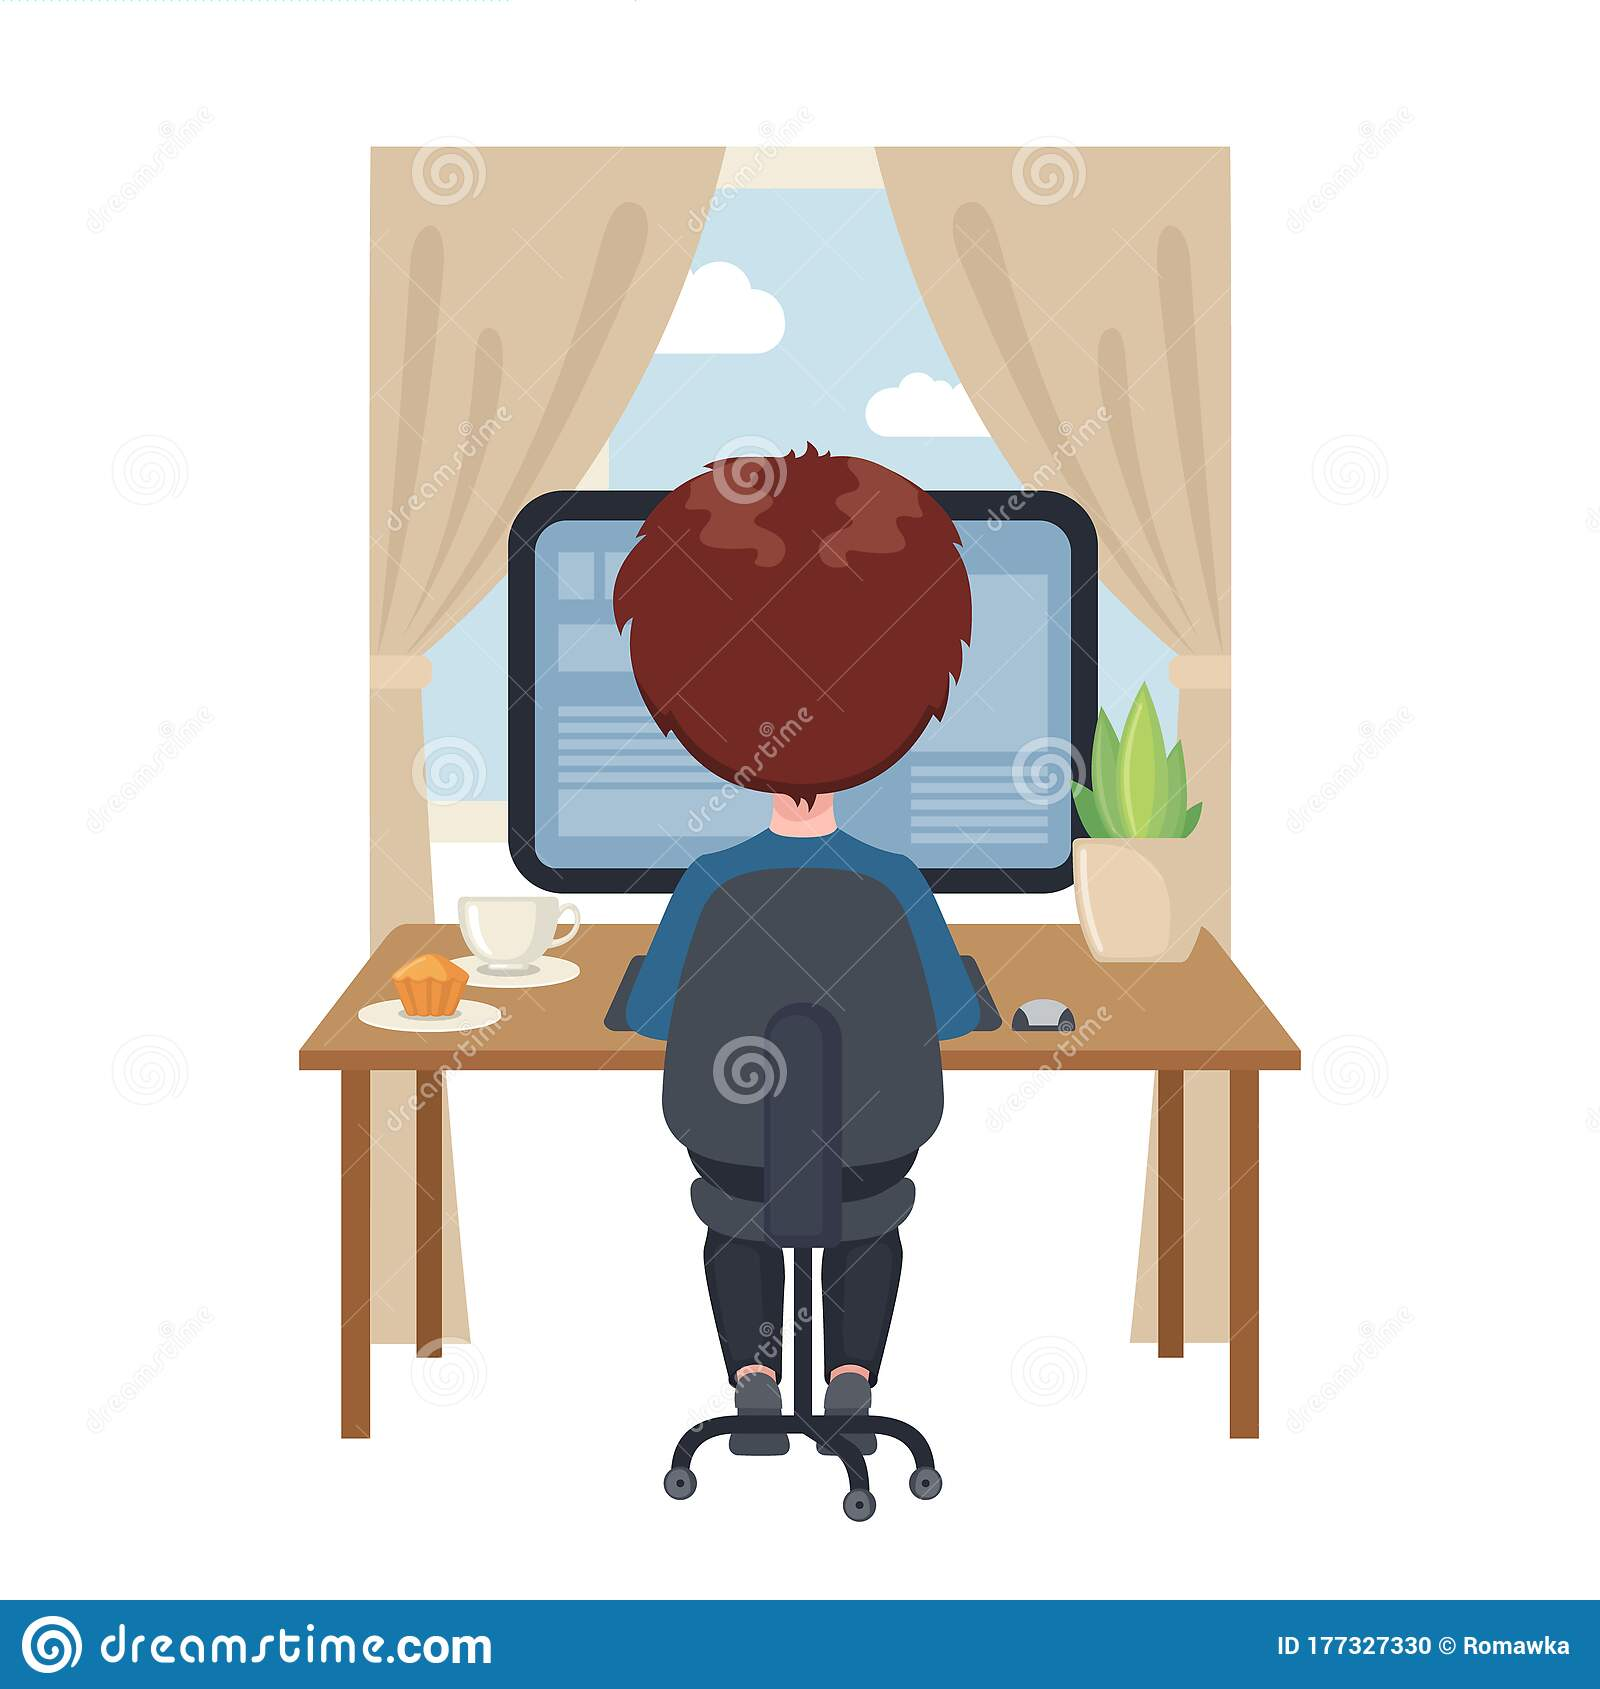 color image cartoon faceless man sitting in desk with